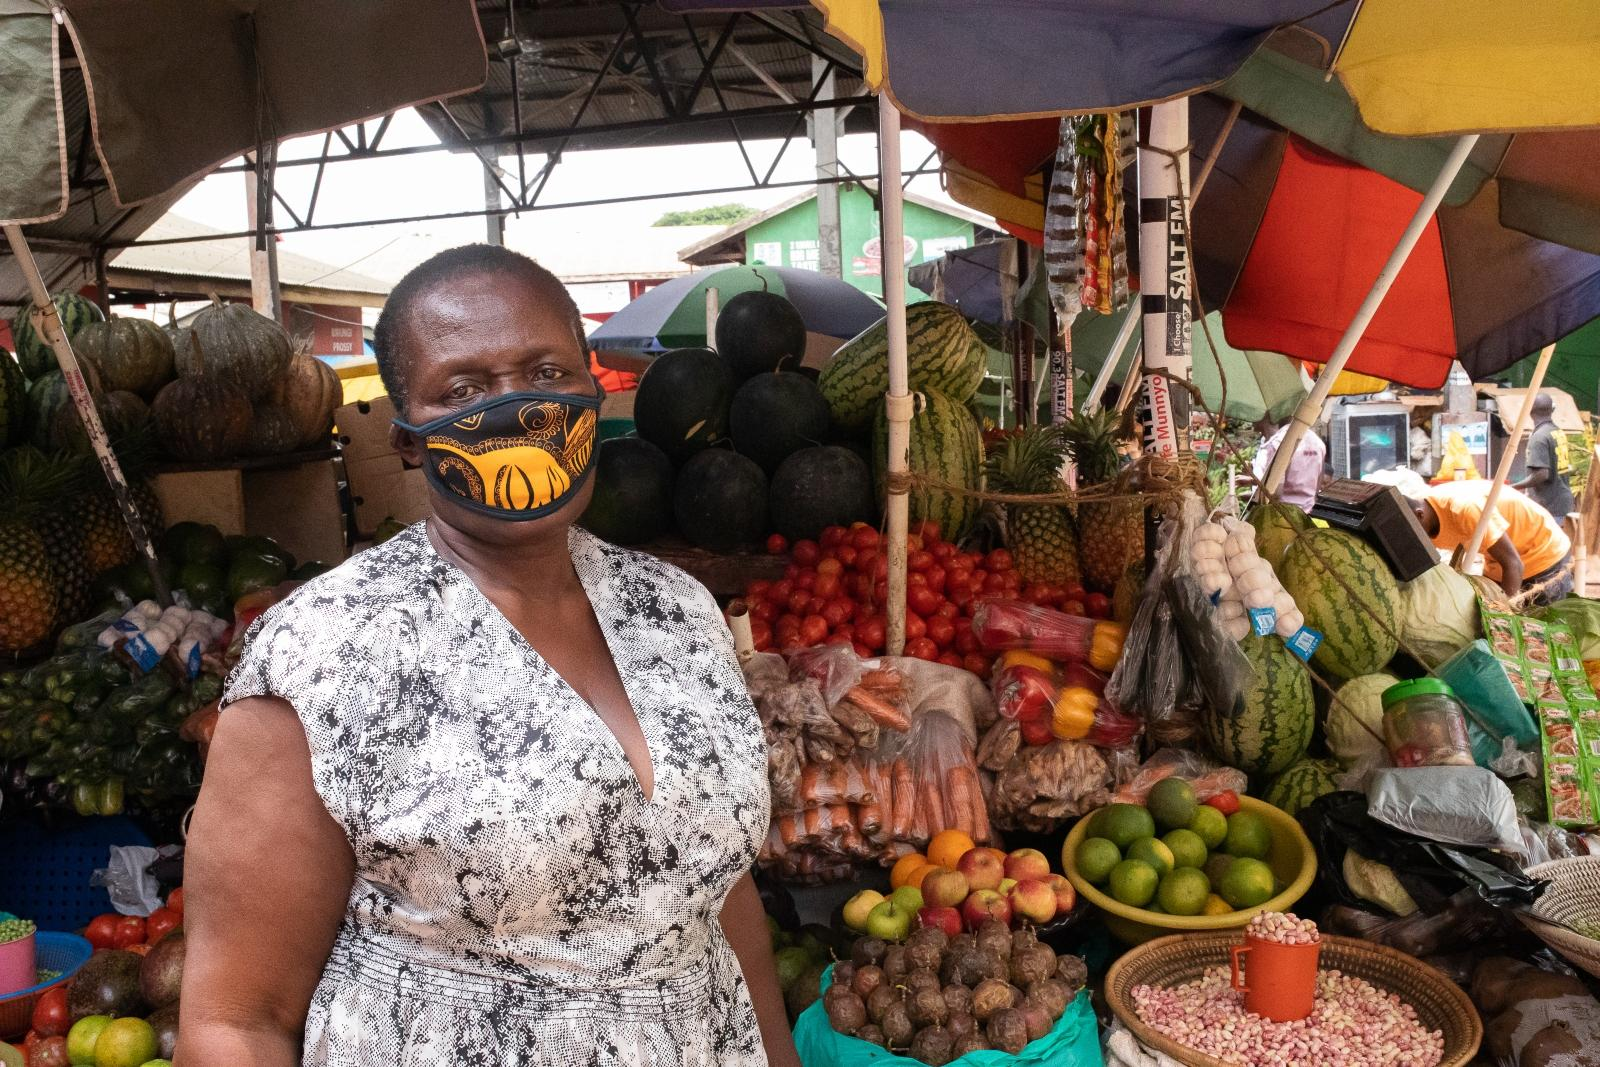 A woman in a face mask by her fruit stall